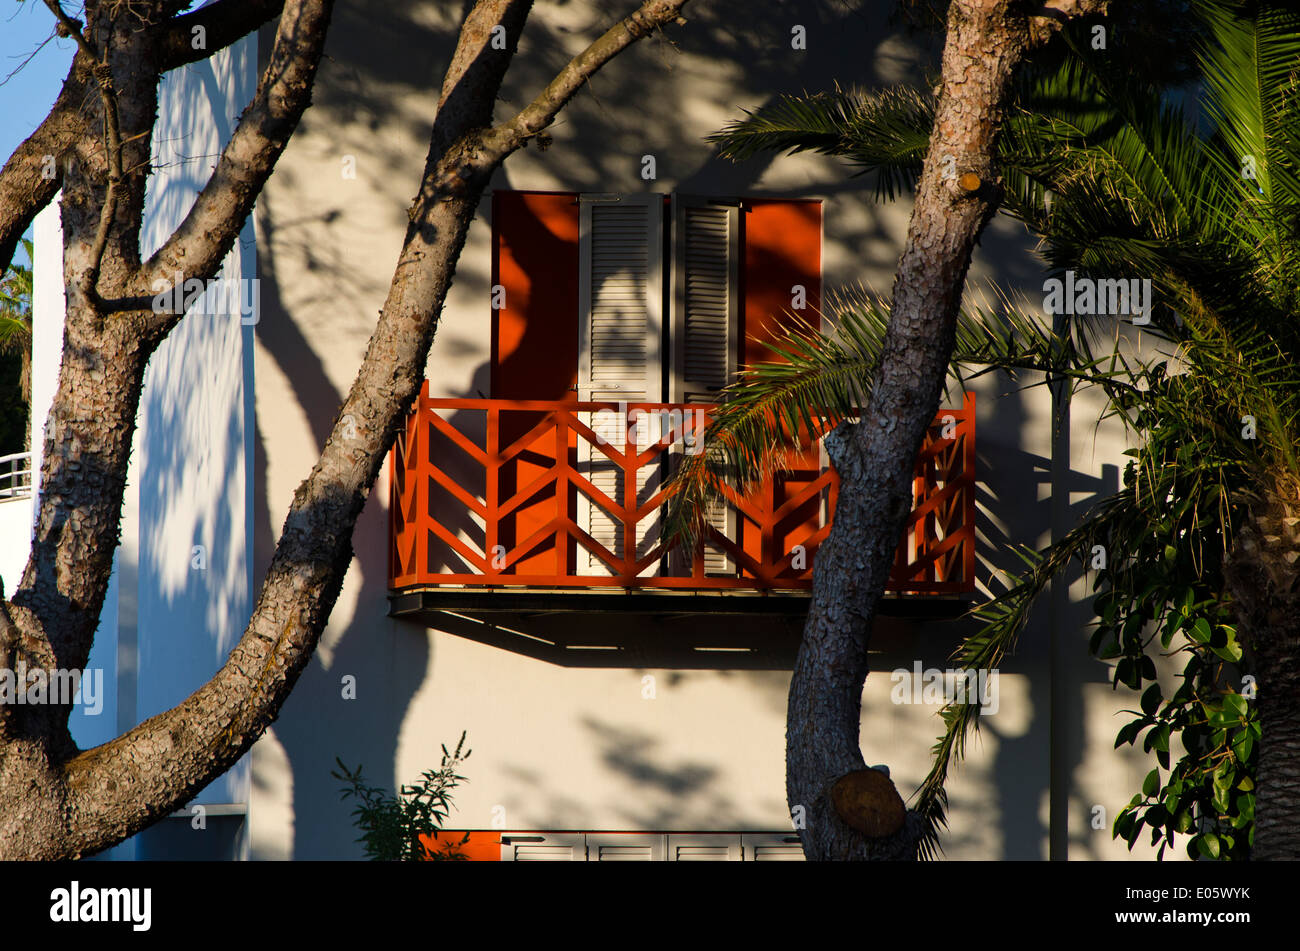 Mediterranean balcony with shuttered windows. - Stock Image